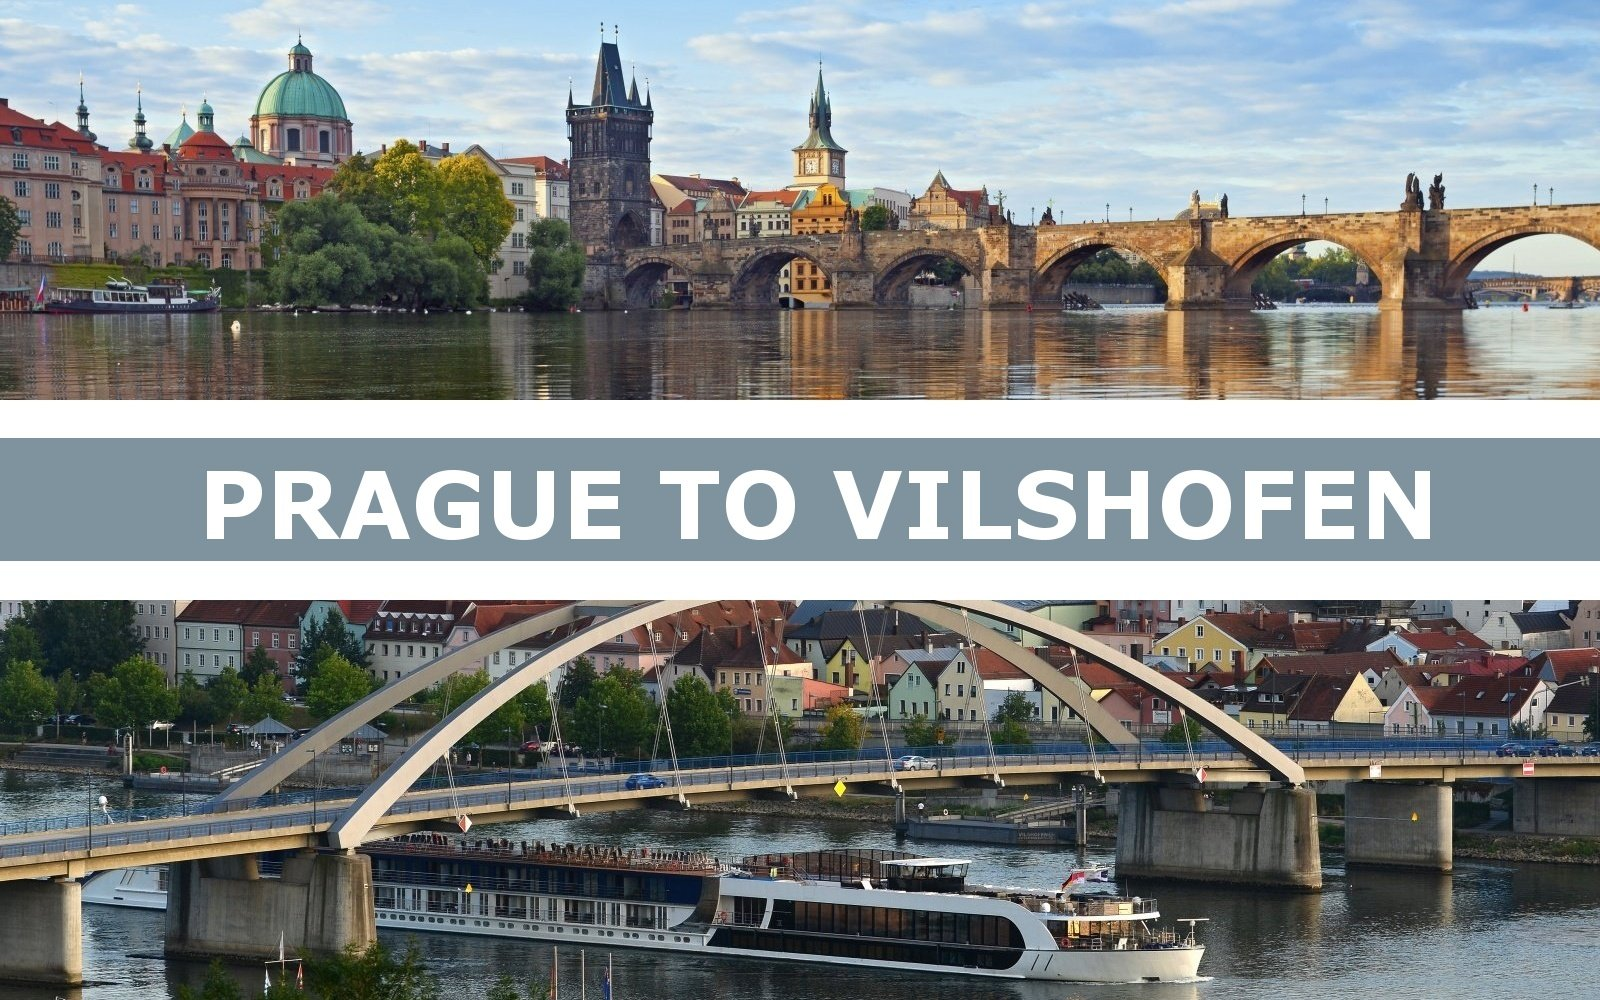 Transportation from Prague to Vilshofen